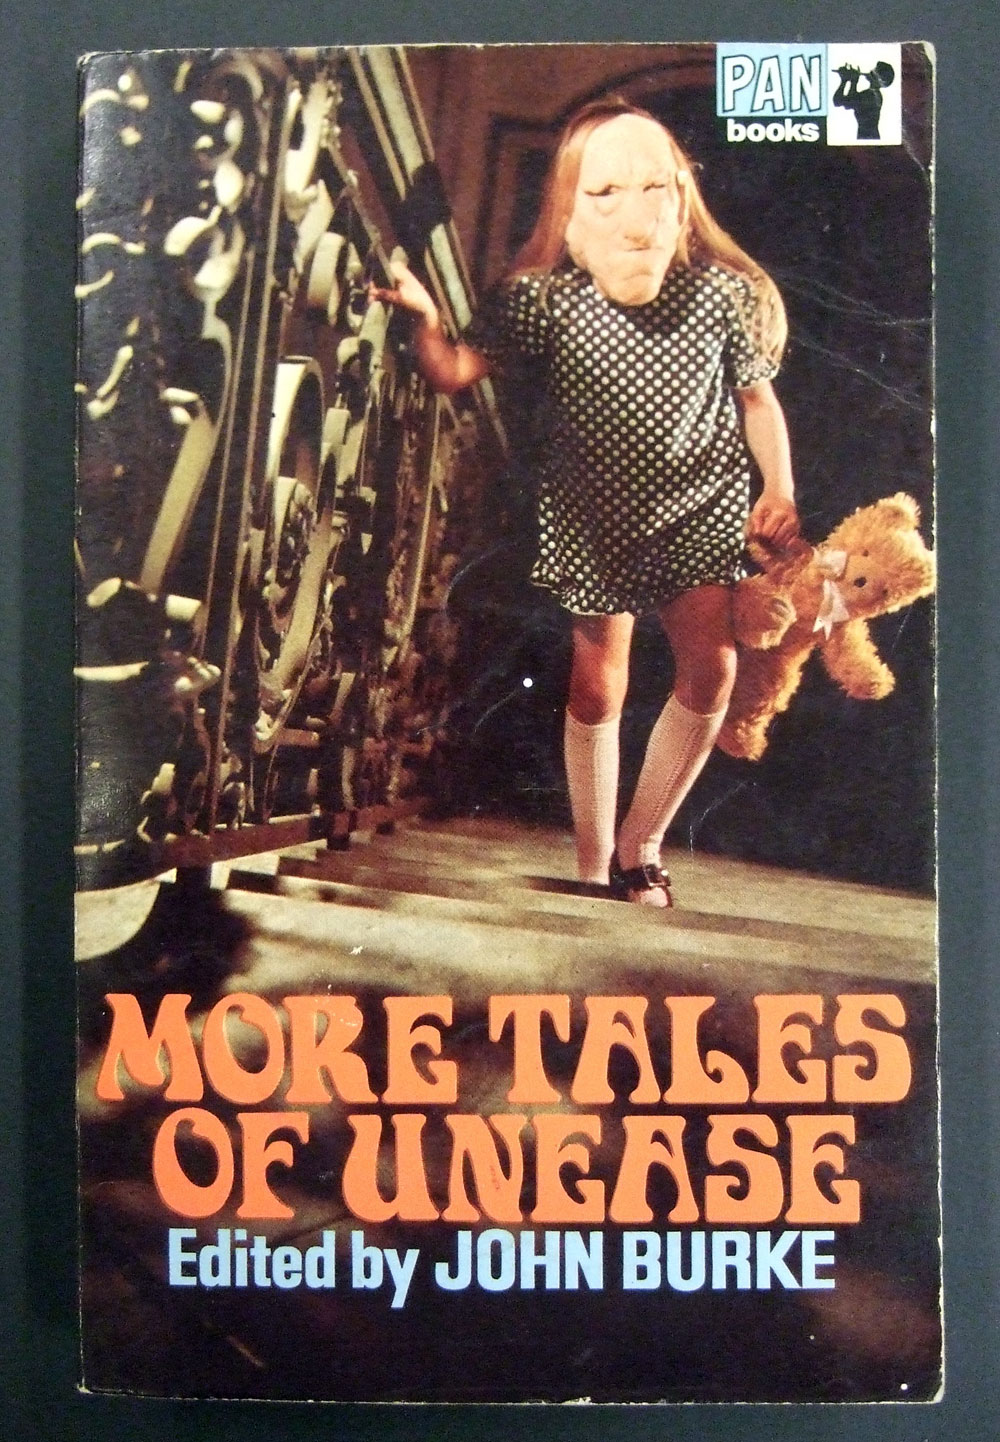 More Tales of Unease